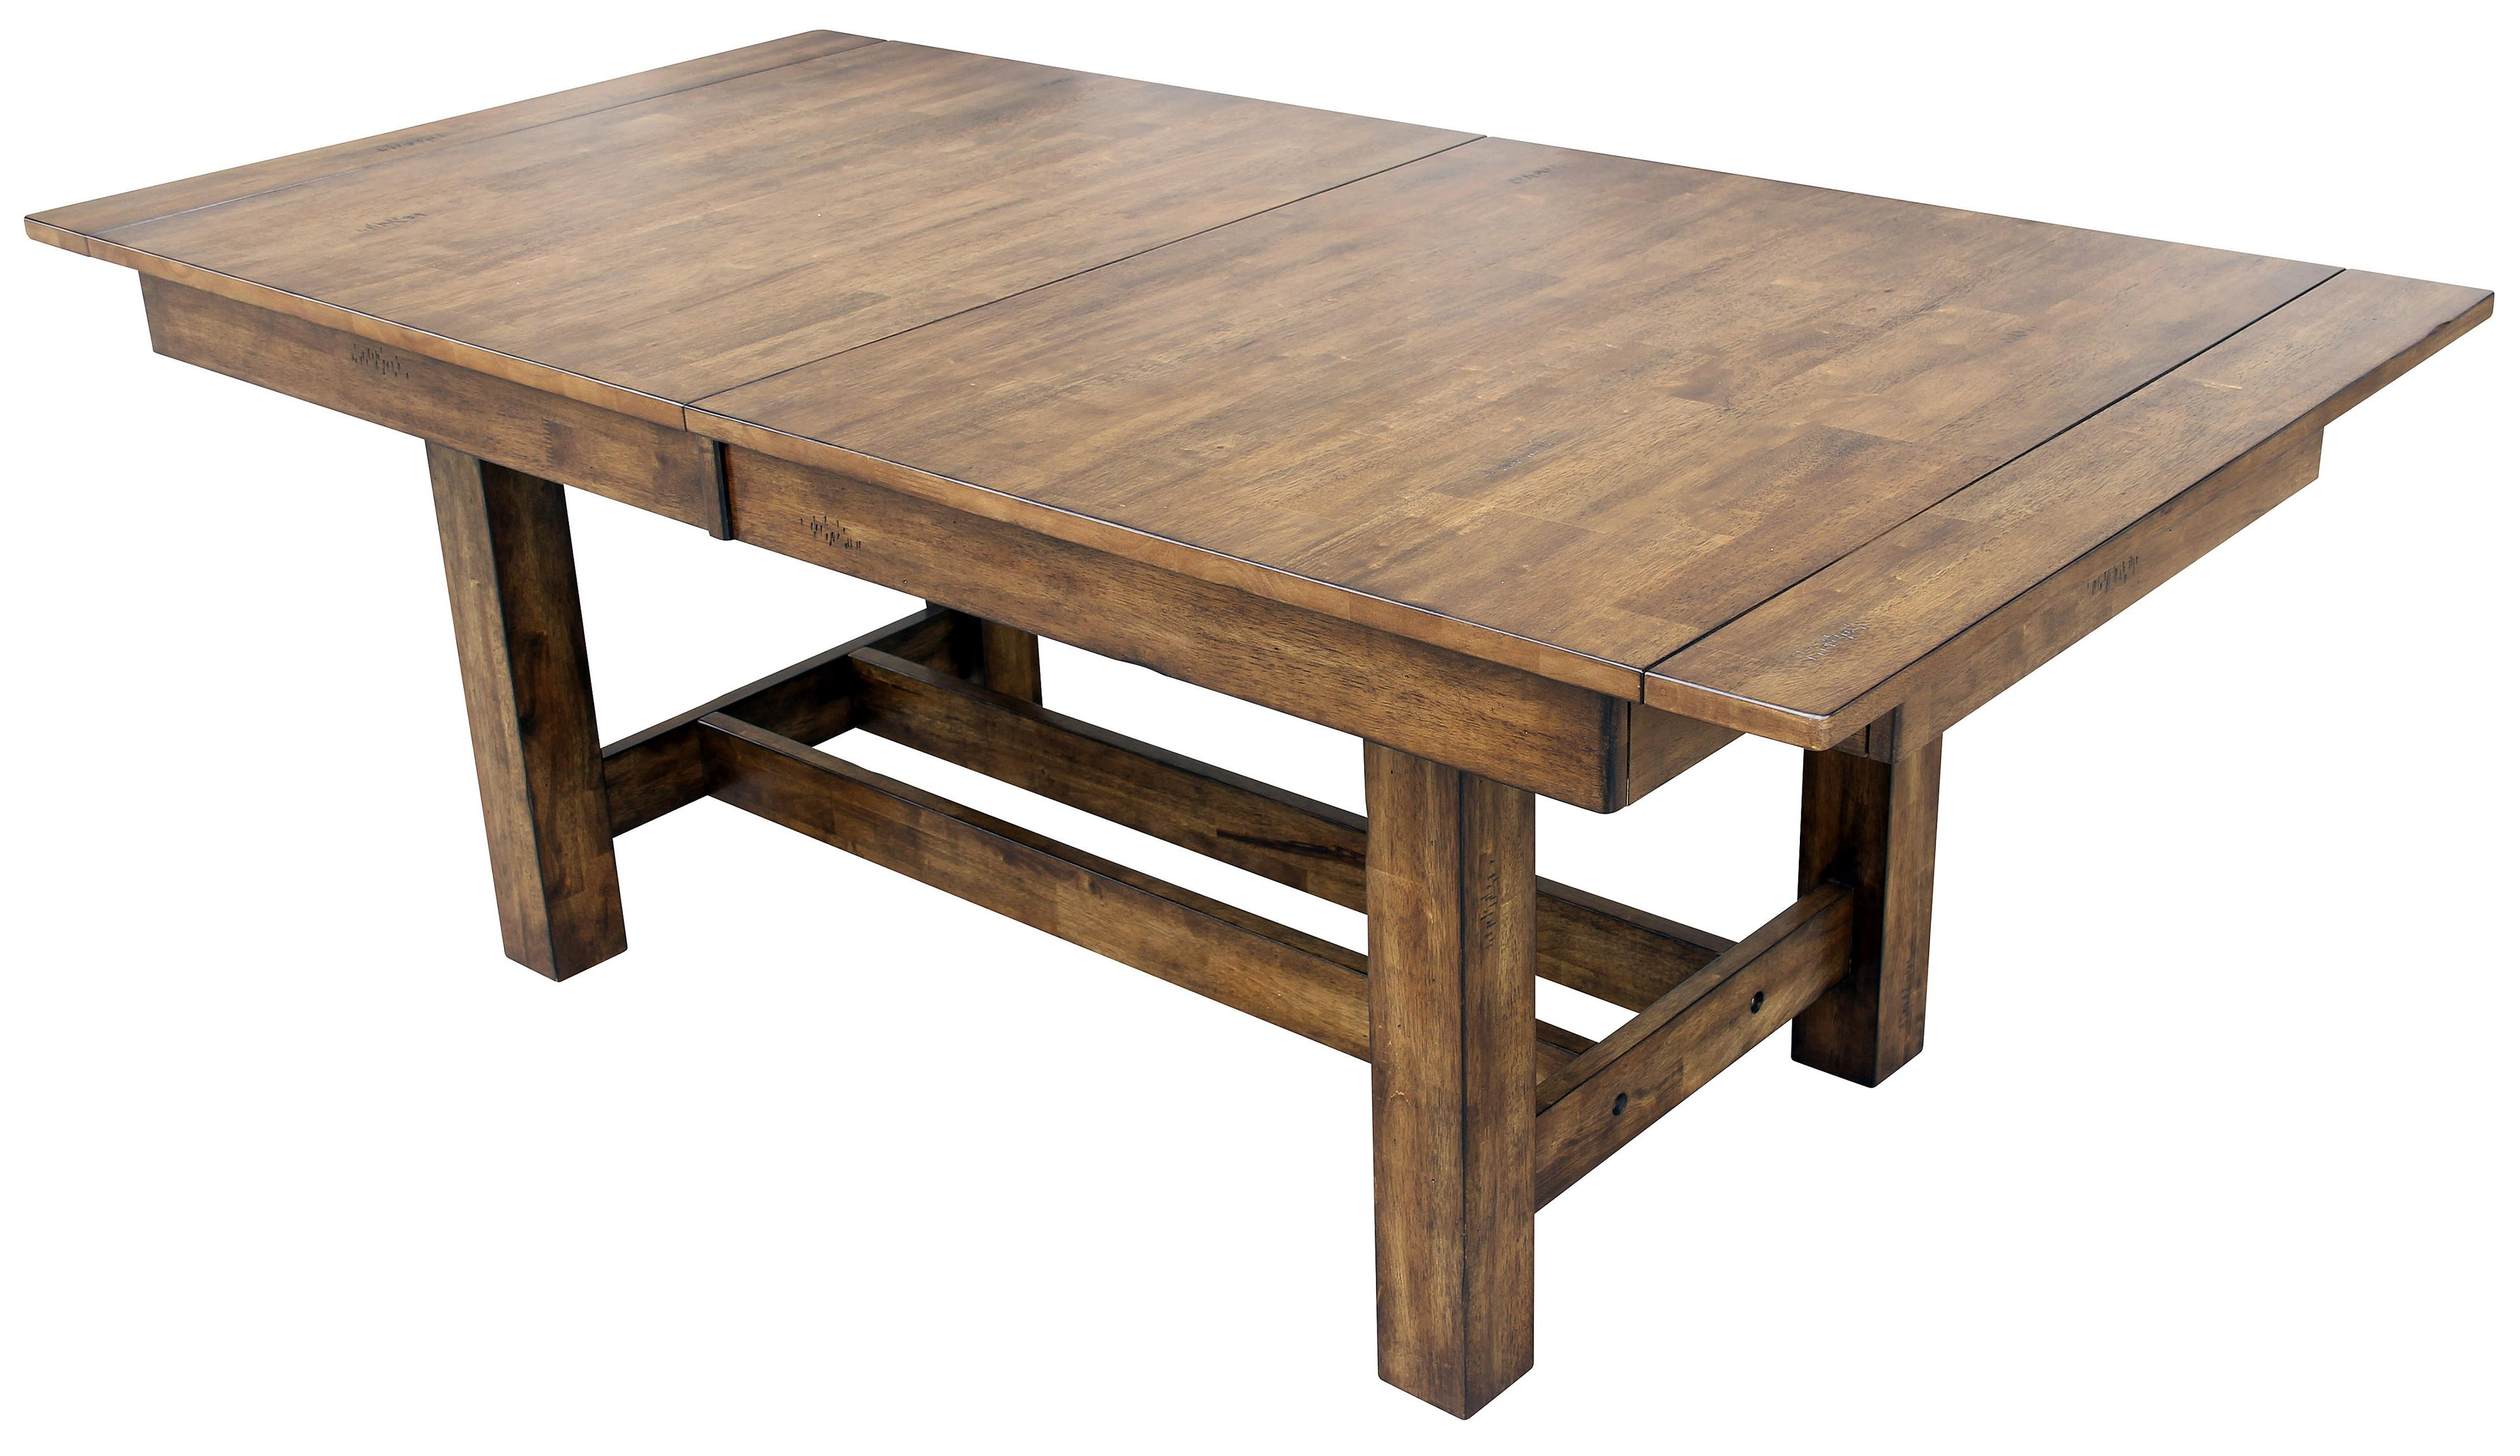 Trestle Table with 3 Butterfly Storage Leaves by AAmerica